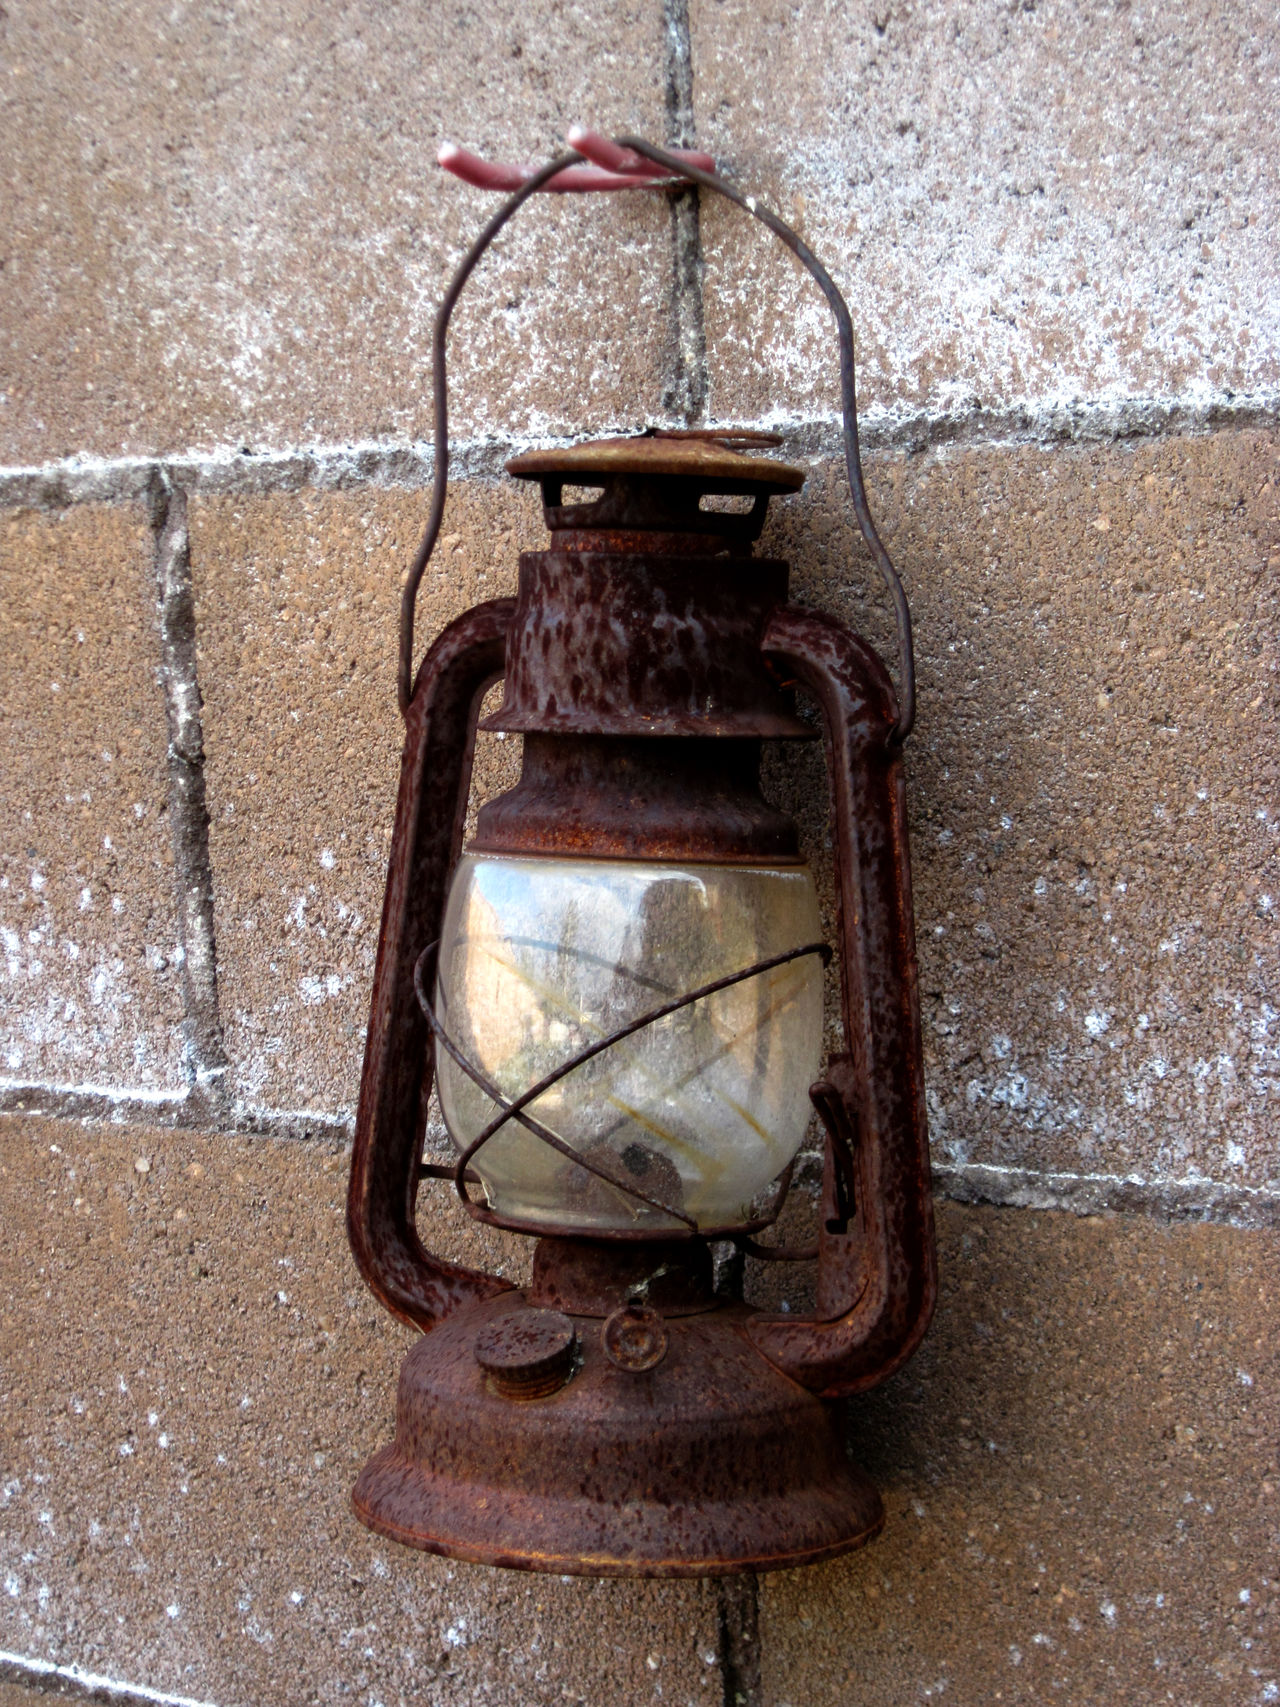 Brick Wall Close-up Day Focus On Foreground Hook Lantern No People Old Old-fashioned Rusty Lantern Still Life